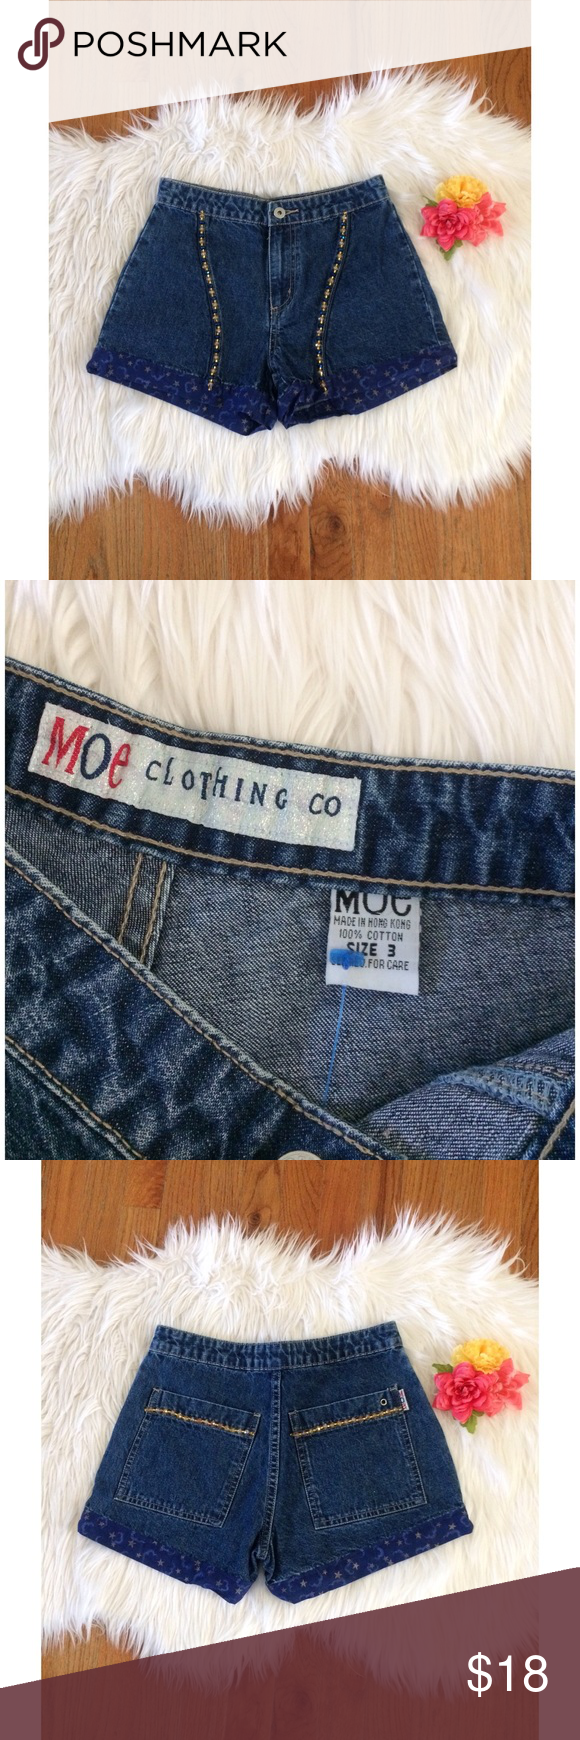 Vintage 90's Celestial High Mom Shorts 💫 Awesome pair of vintage early 90's high waisted shorts by Moe Clothing Co! Features a classic medium blue denim wash with a special celestial star and cloud hem! Has super unique beading down the front as well! Super flattering high waisted fit! One of a kind vintage piece! In great condition! Best fits a size 24/25 :)  Measurements: Waist- 12.5 inches flat across  Rise- About 10 inches  Hips- 19 inches flat across  Inseam- 3 inches Vintage Shorts…